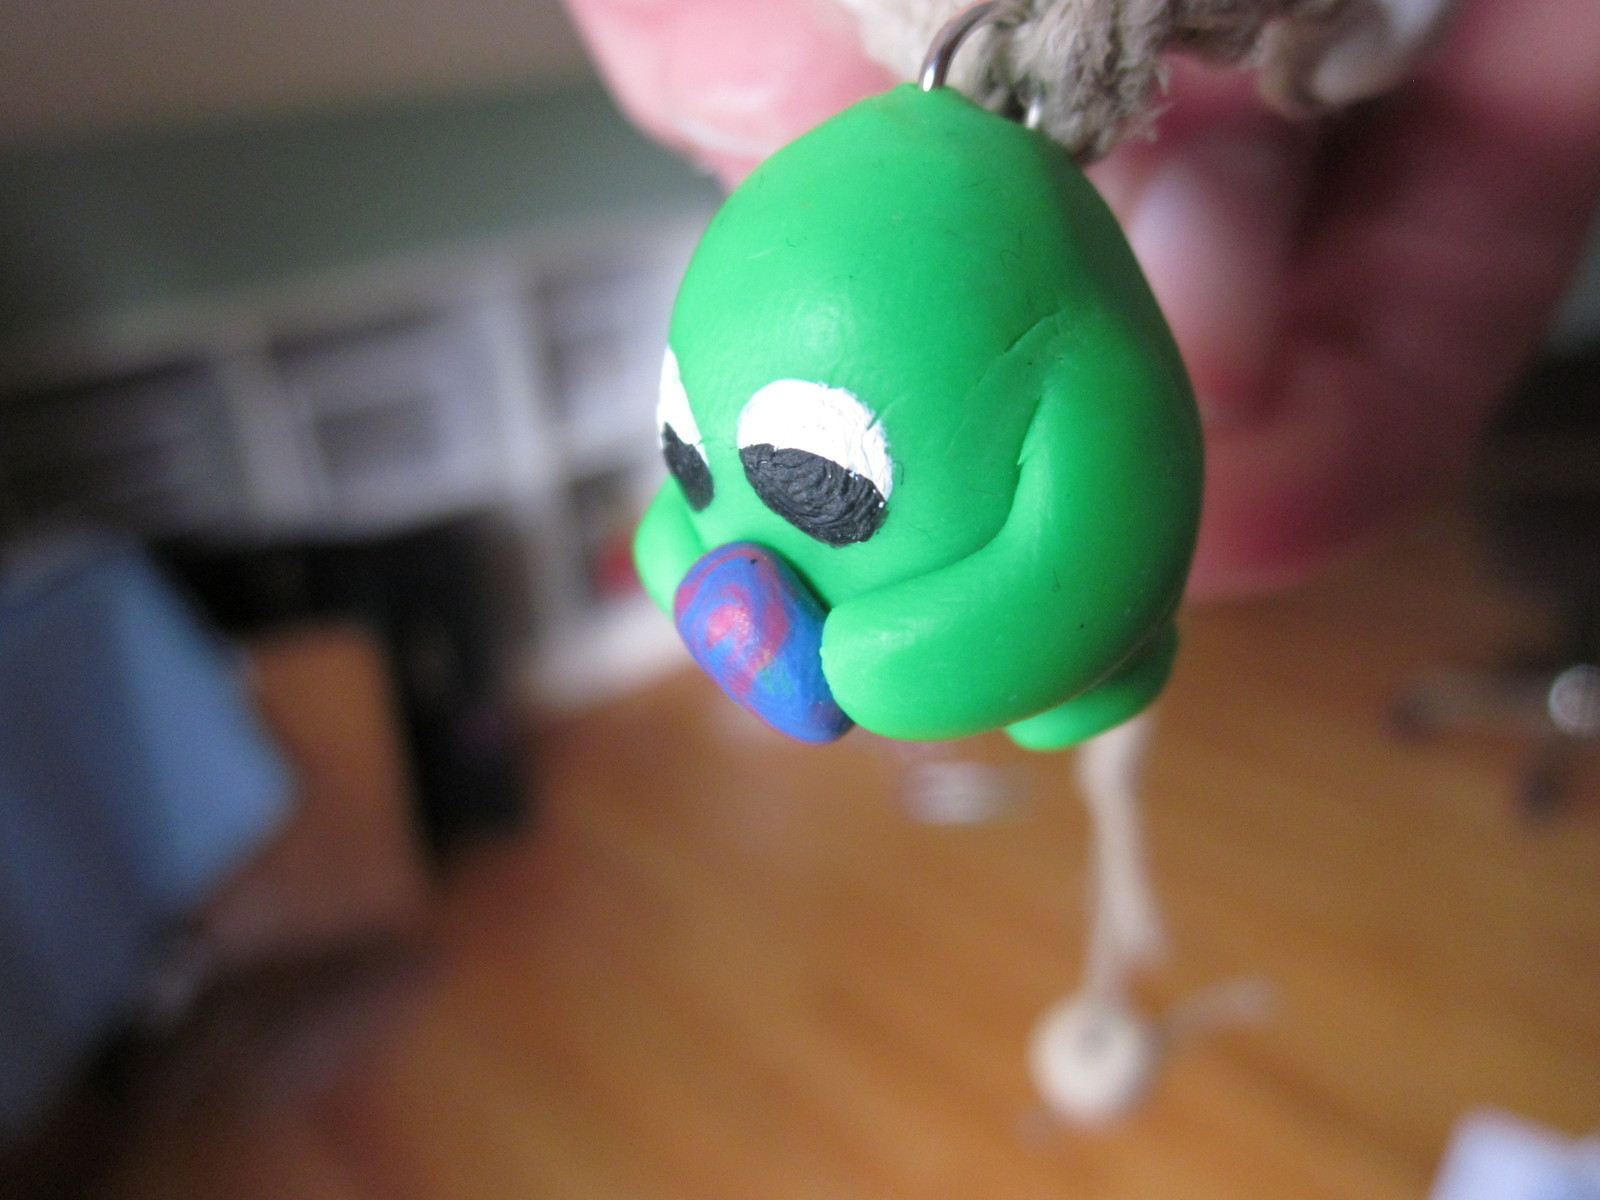 Polymer Clay Character Idea From At Amp T Phone Commercial